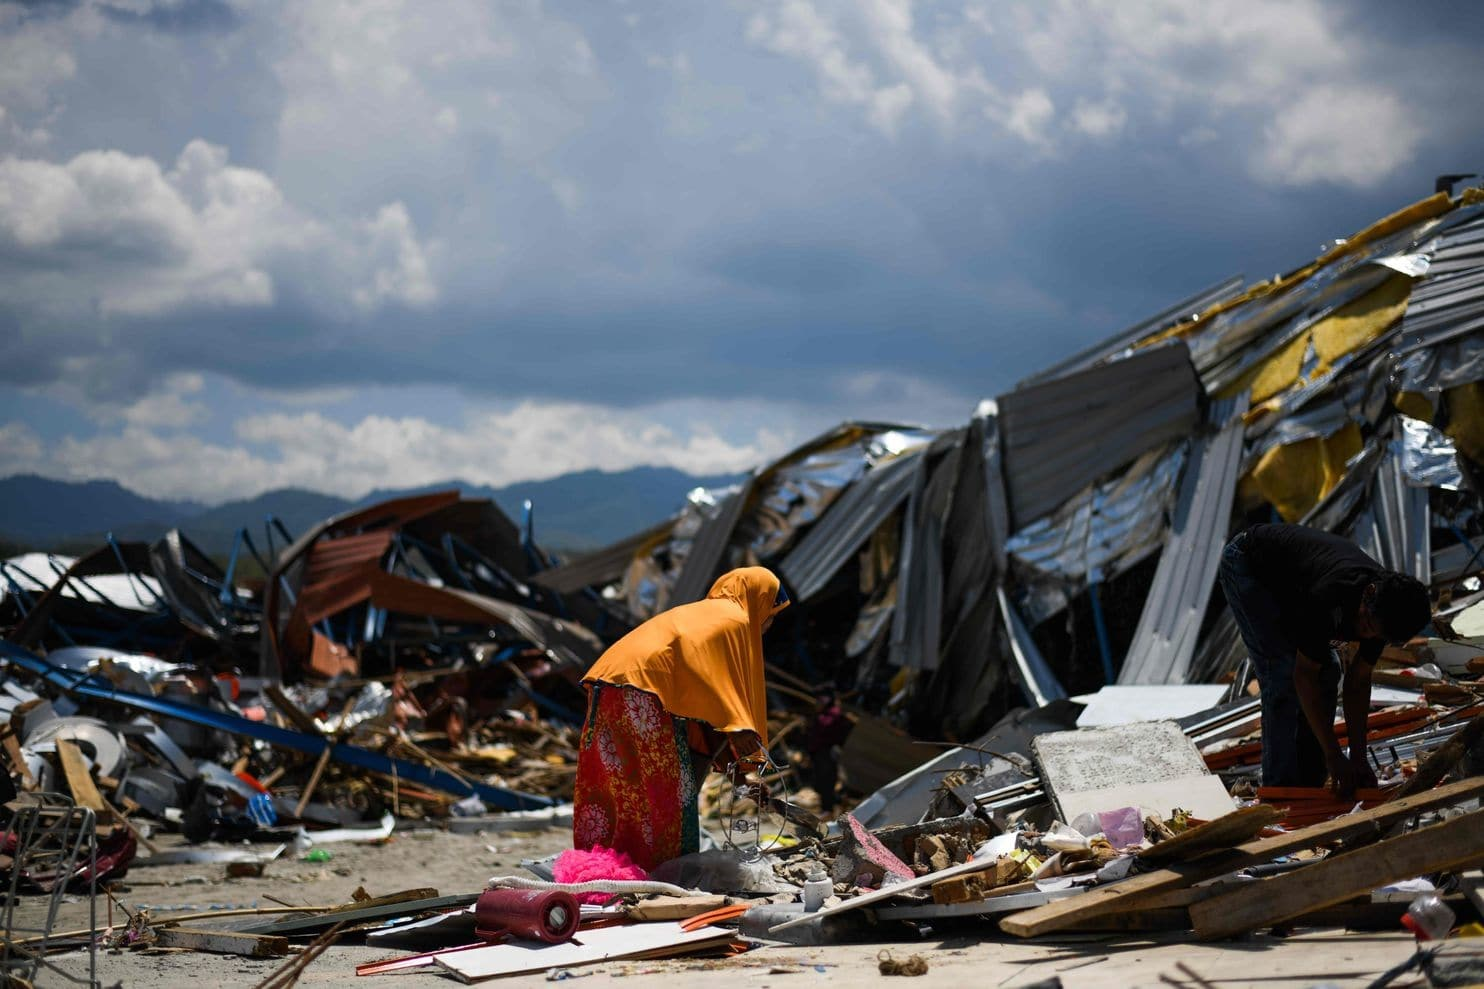 A woman searches for supplies amongst debris after a massive earthquake struck the city of Palu.